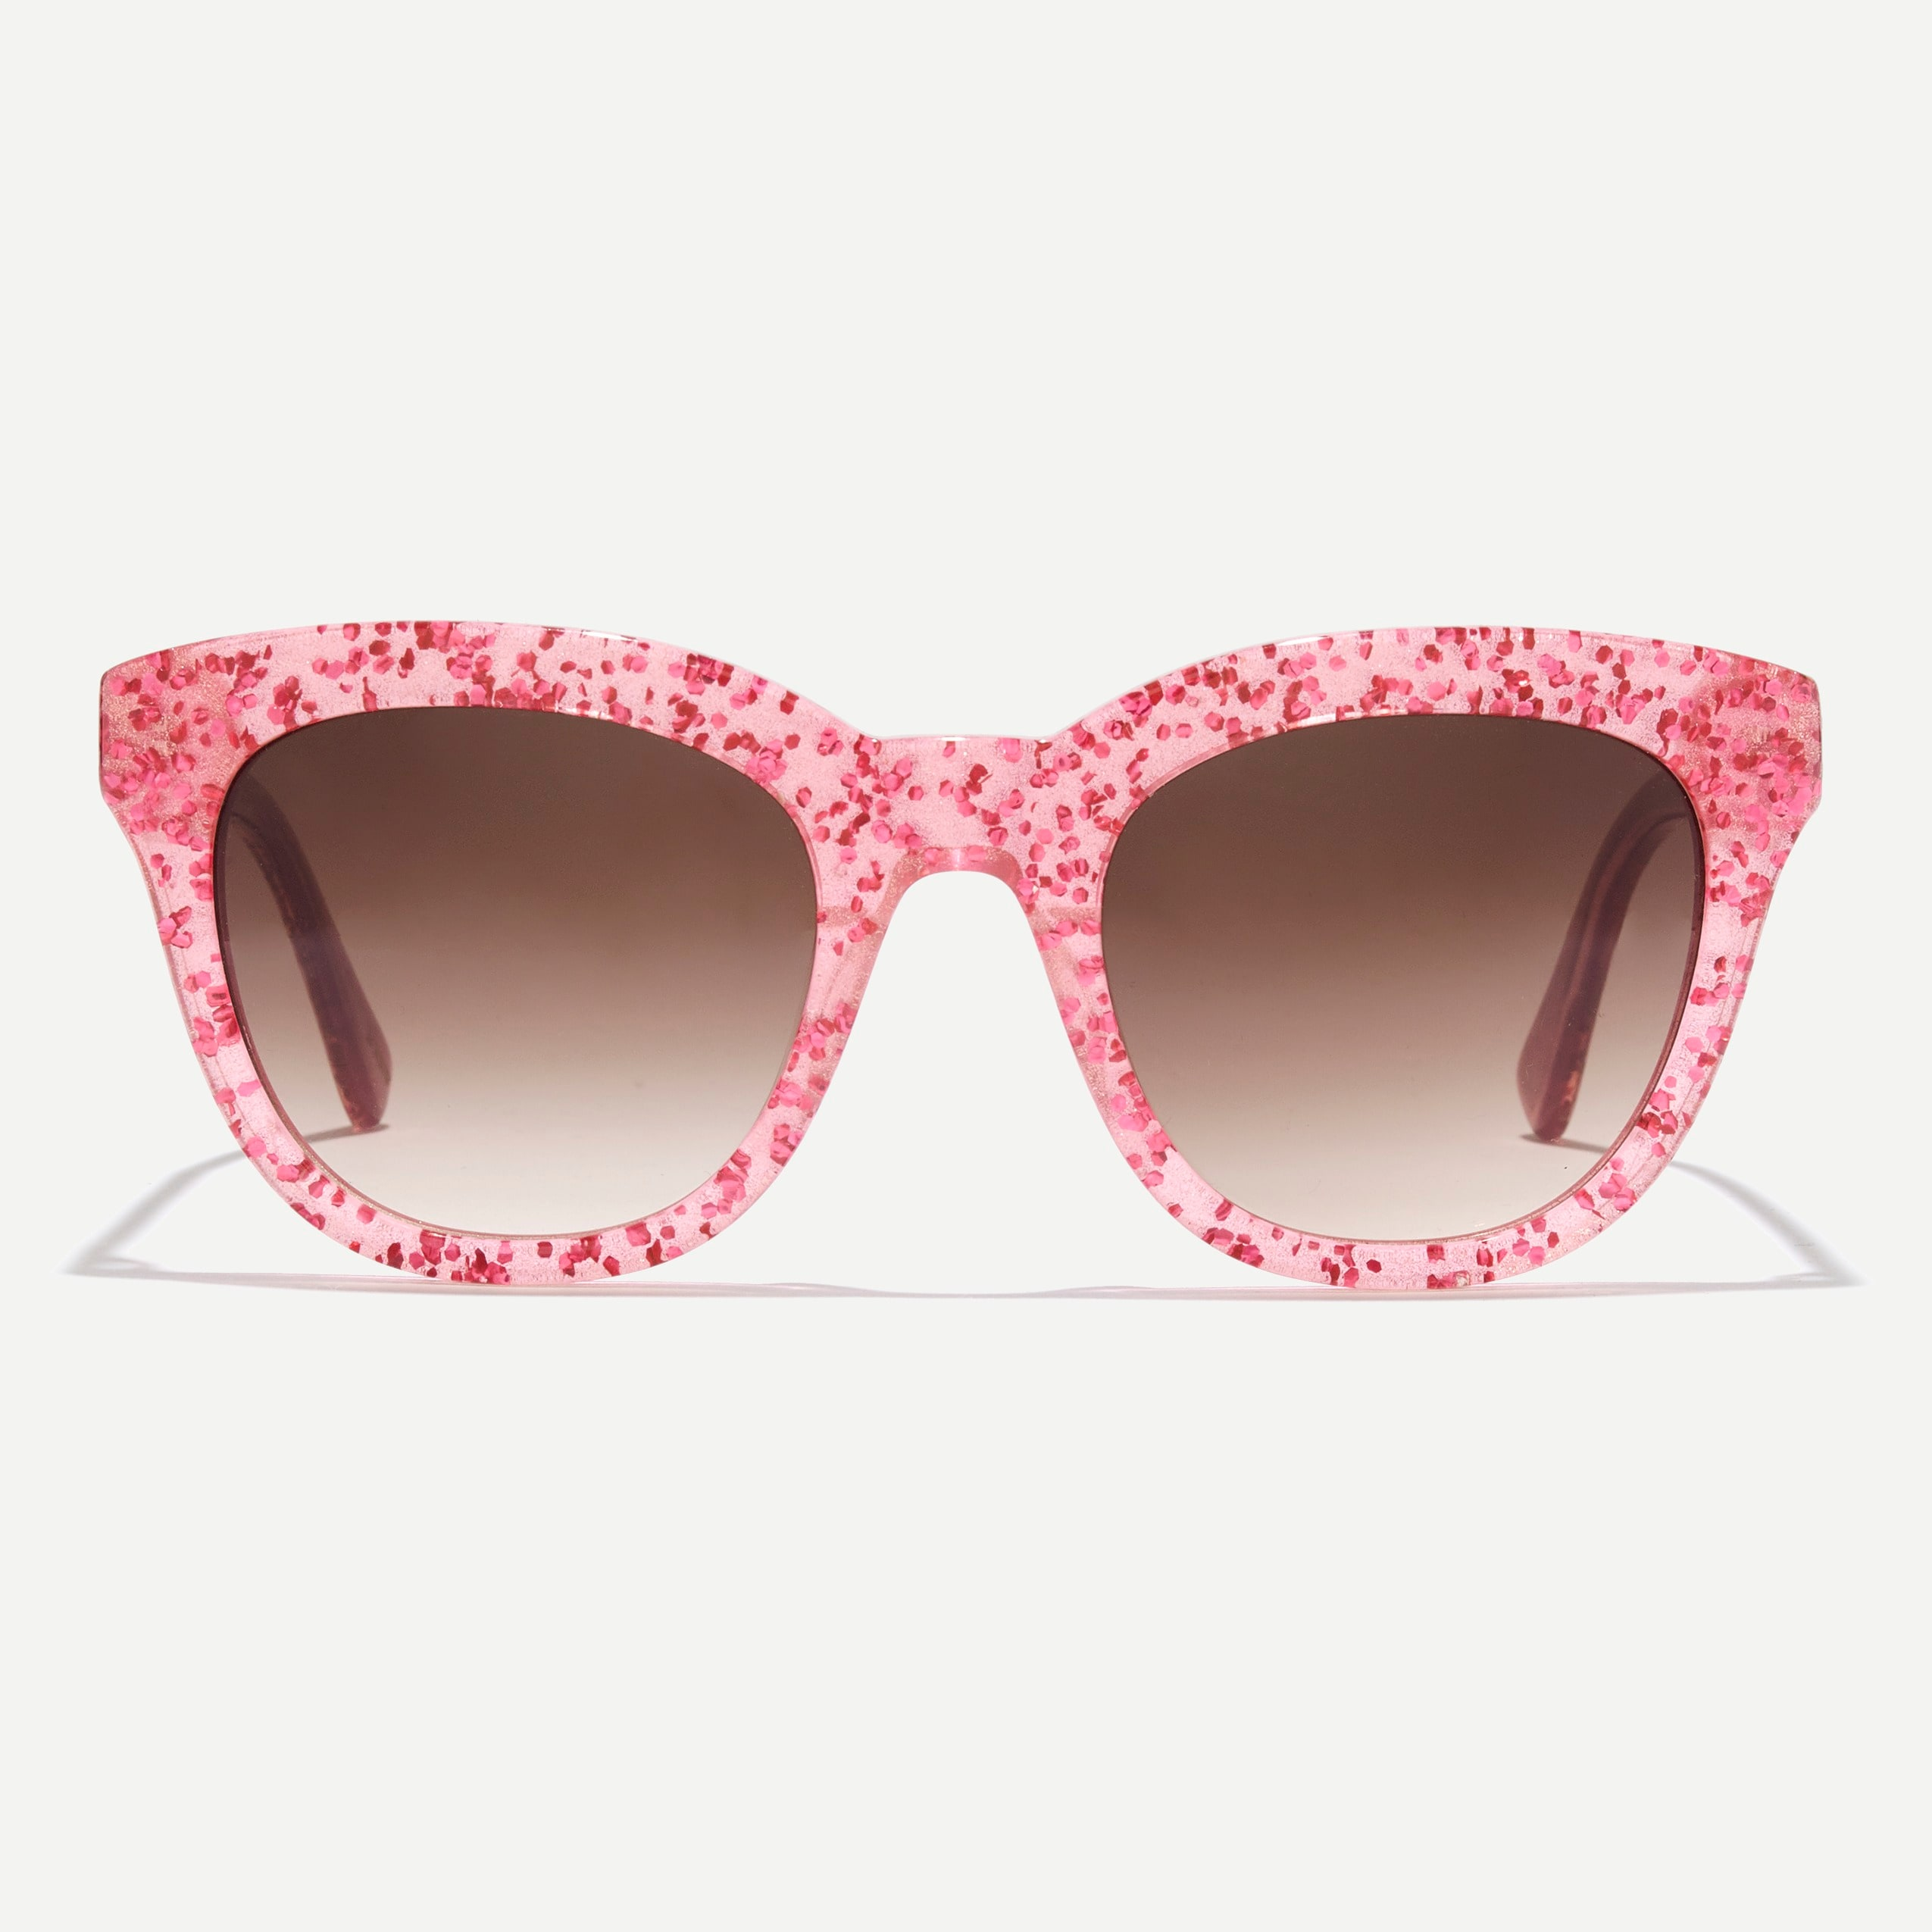 Cabana oversized sunglasses